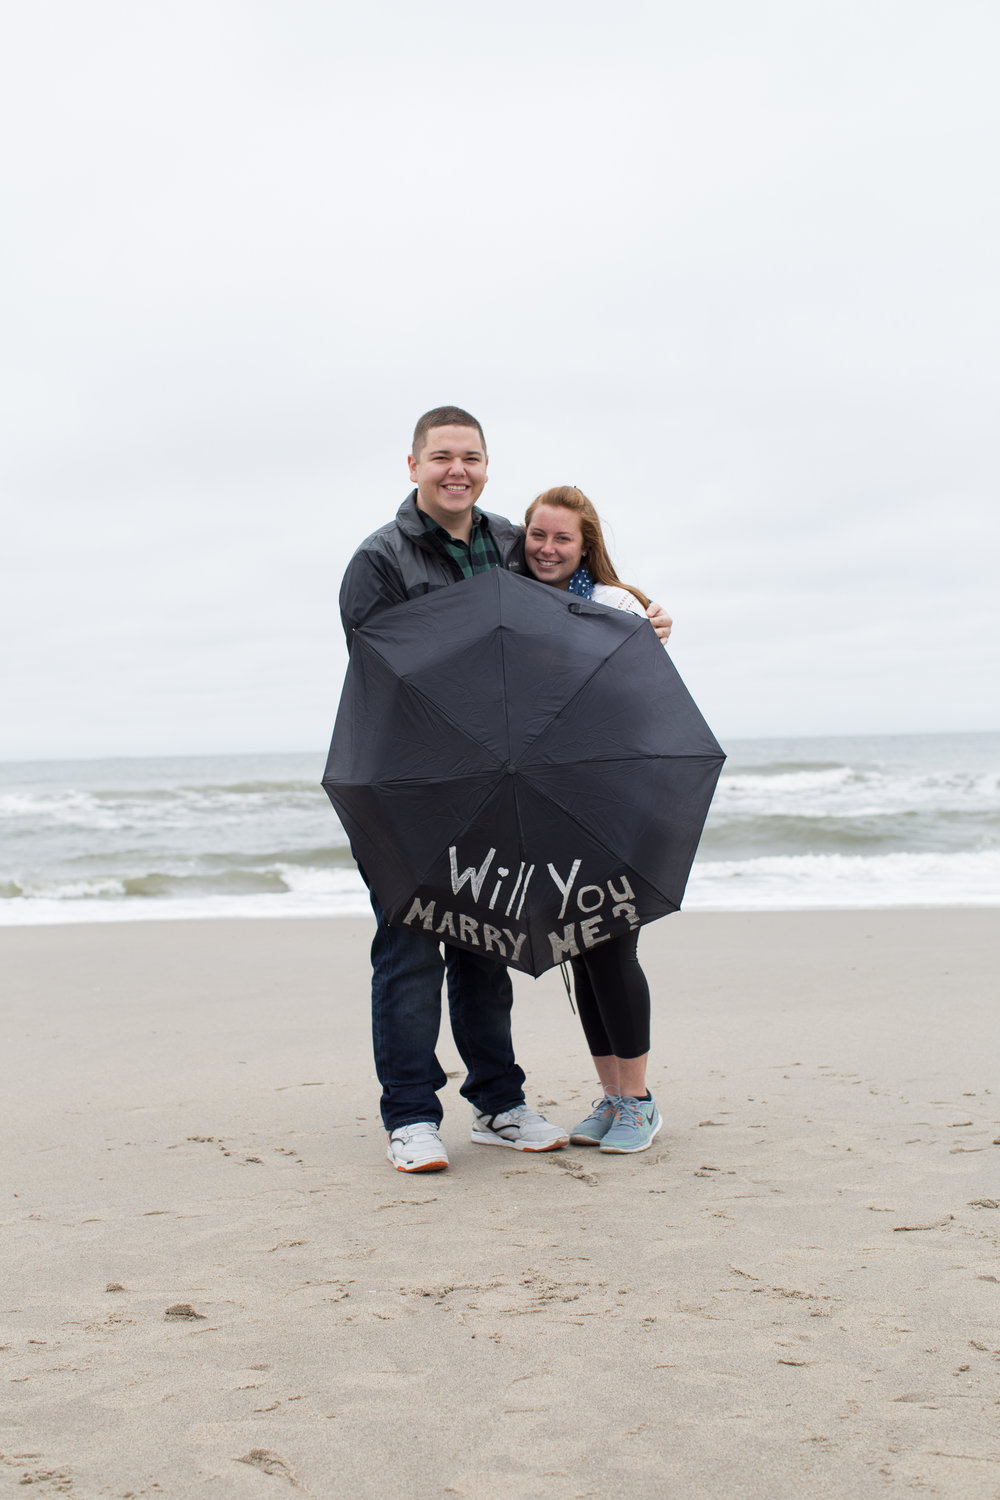 "Tell us about the proposal!: - We live in Rockaway Beach and often take walks along the beach, no matter the season. One cloudy, grey October morning, we headed to the beach for a walk. We started walking towards the shore and it looked like it was going to rain. After commenting on this, Tom announced that he brought an umbrella with him and asked if I wanted to see it. He opened up a black umbrella and in big silver letters read the words ""WILL YOU MARRY ME?"" I was shocked. It was the most exciting moment of my life! When we got to my parents house to share our big news, every one of our closest friends and family members were there ready to celebrate with us."